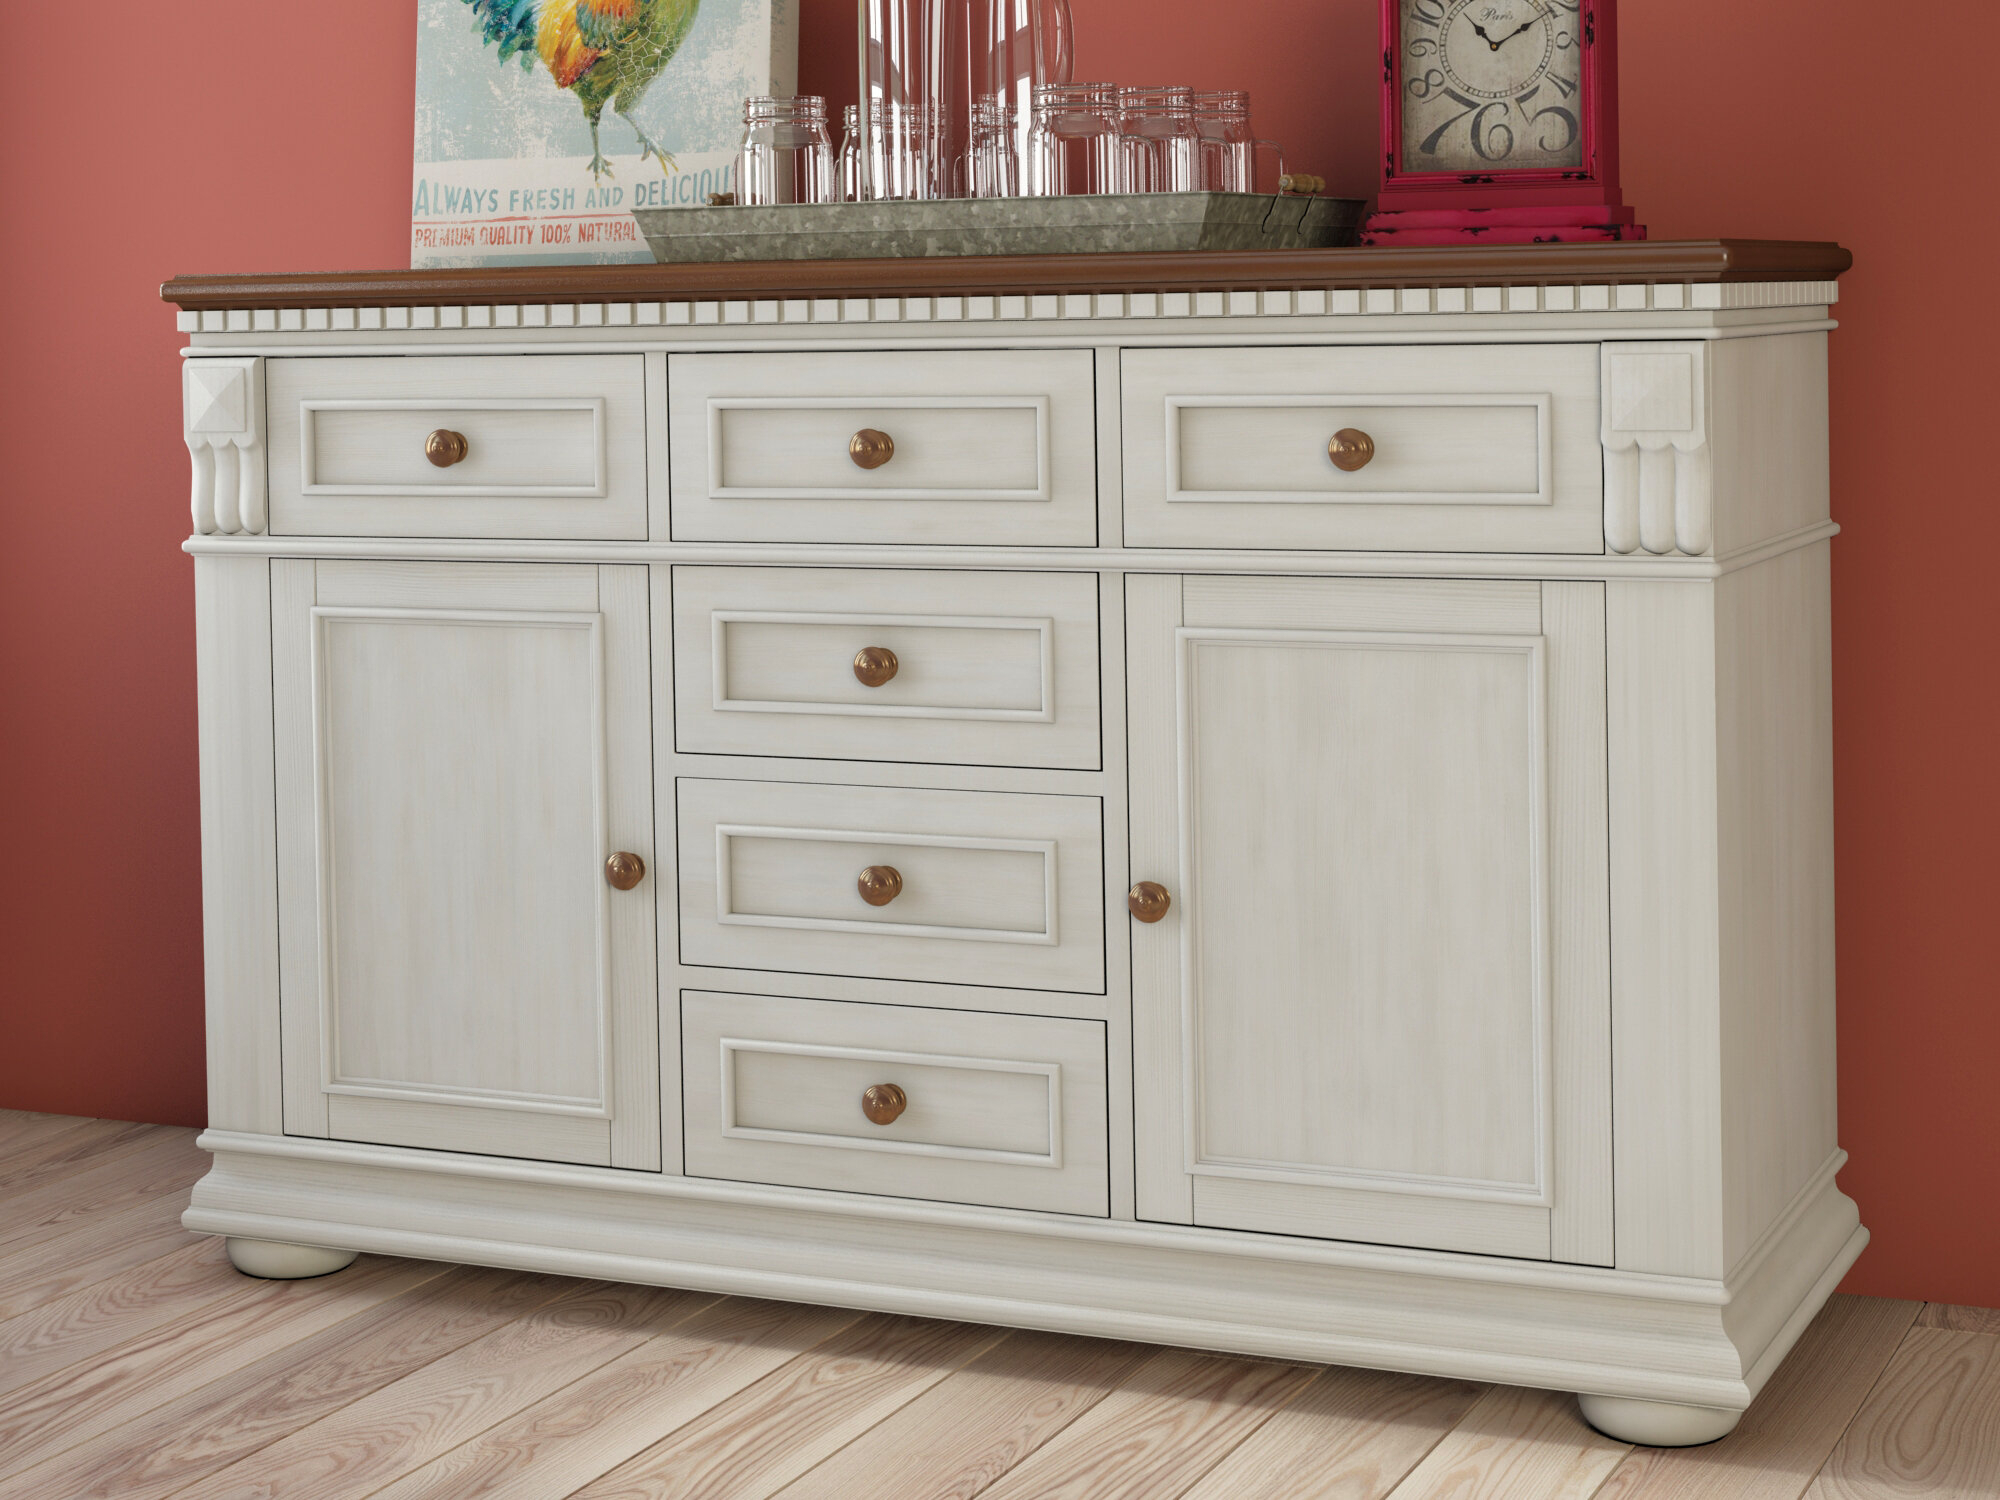 Farmhouse & Rustic Darby Home Co Sideboards & Buffets Within Phyllis Sideboards (View 23 of 30)